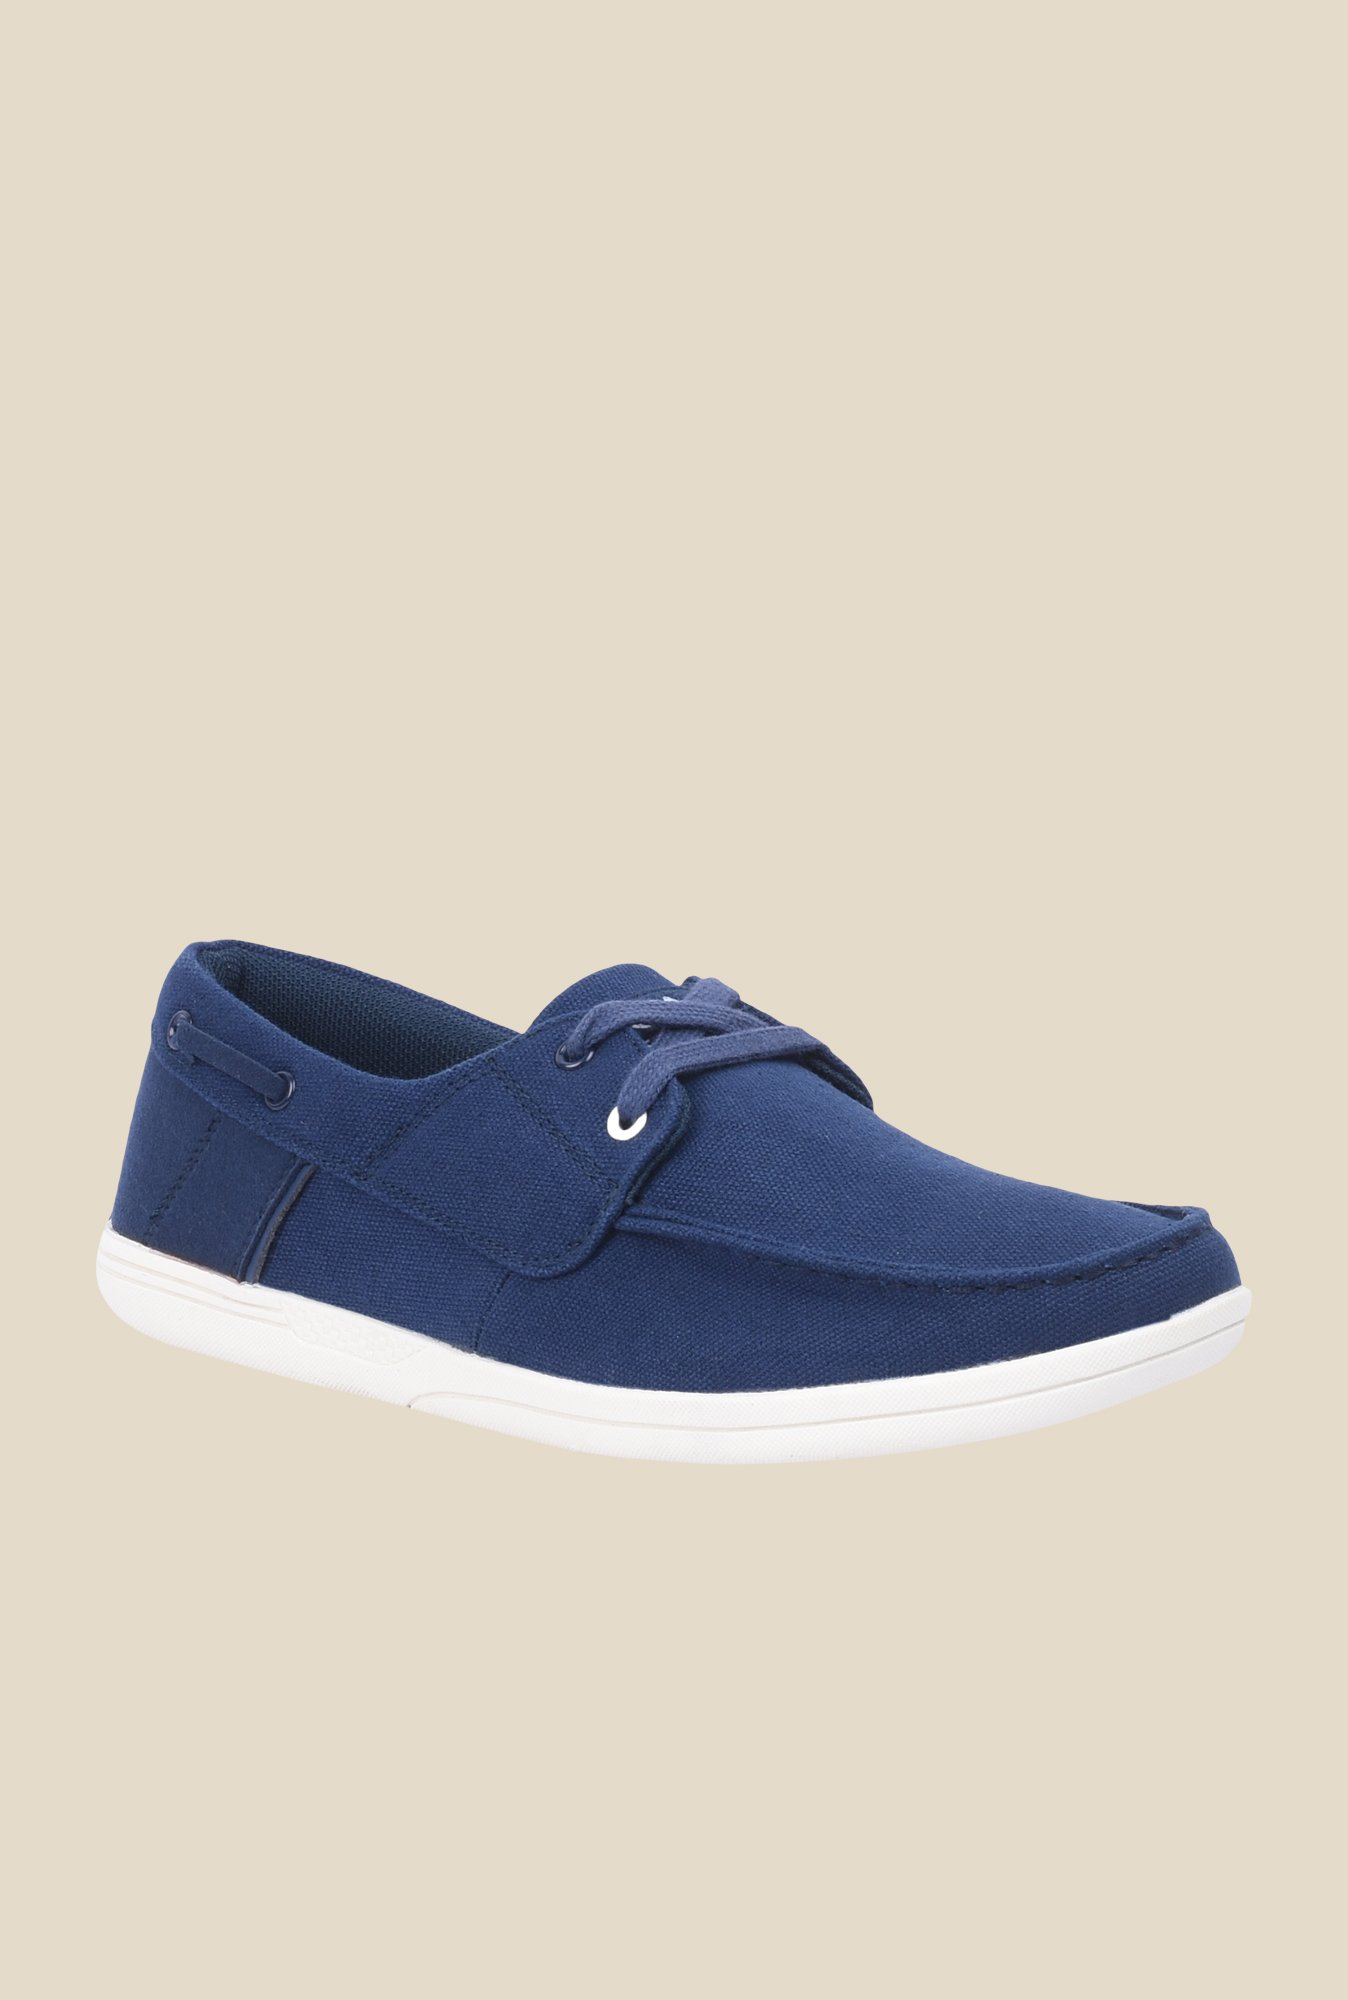 Spunk Duke Navy & White Boat Shoes